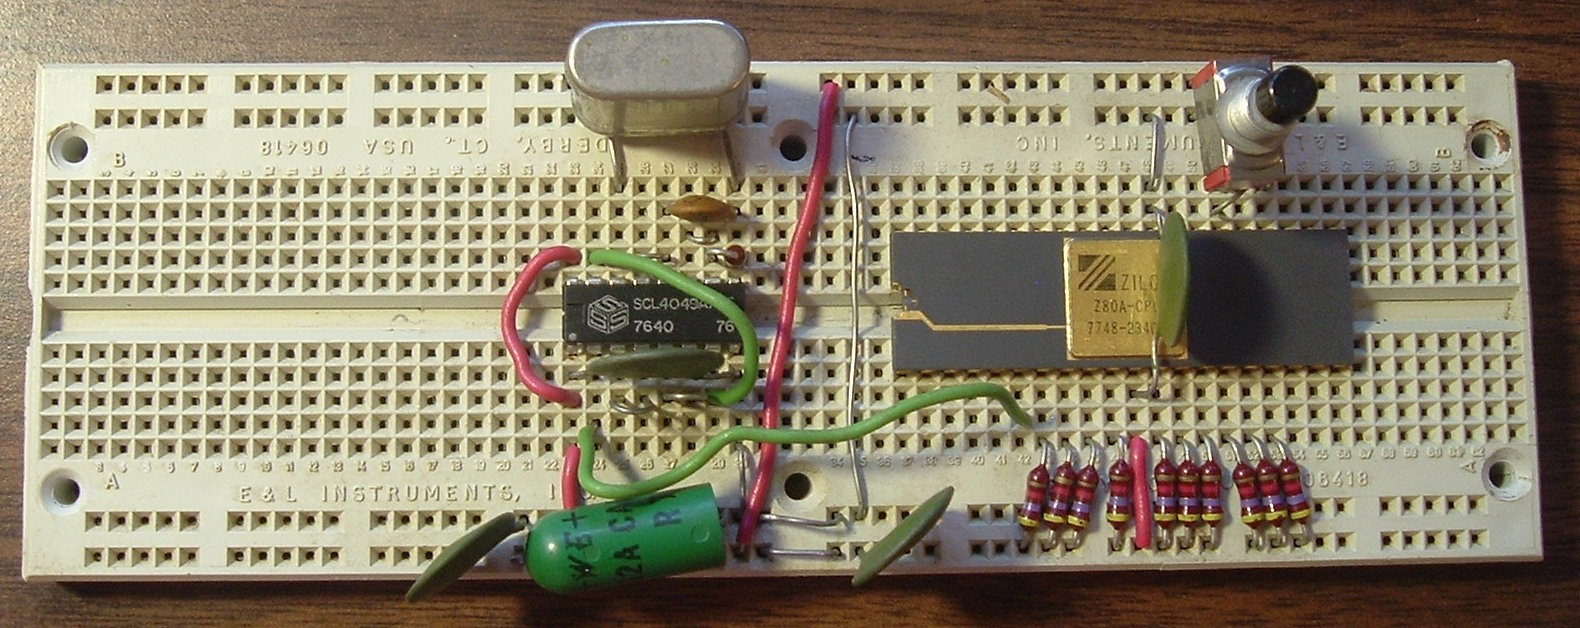 Breadboards And Electrical Circuits How To Build An Electric Circuit We Still Call These Plastic Boards Its Sort Of A Throwback Term The Original Way Making They Are Also Called Solderless